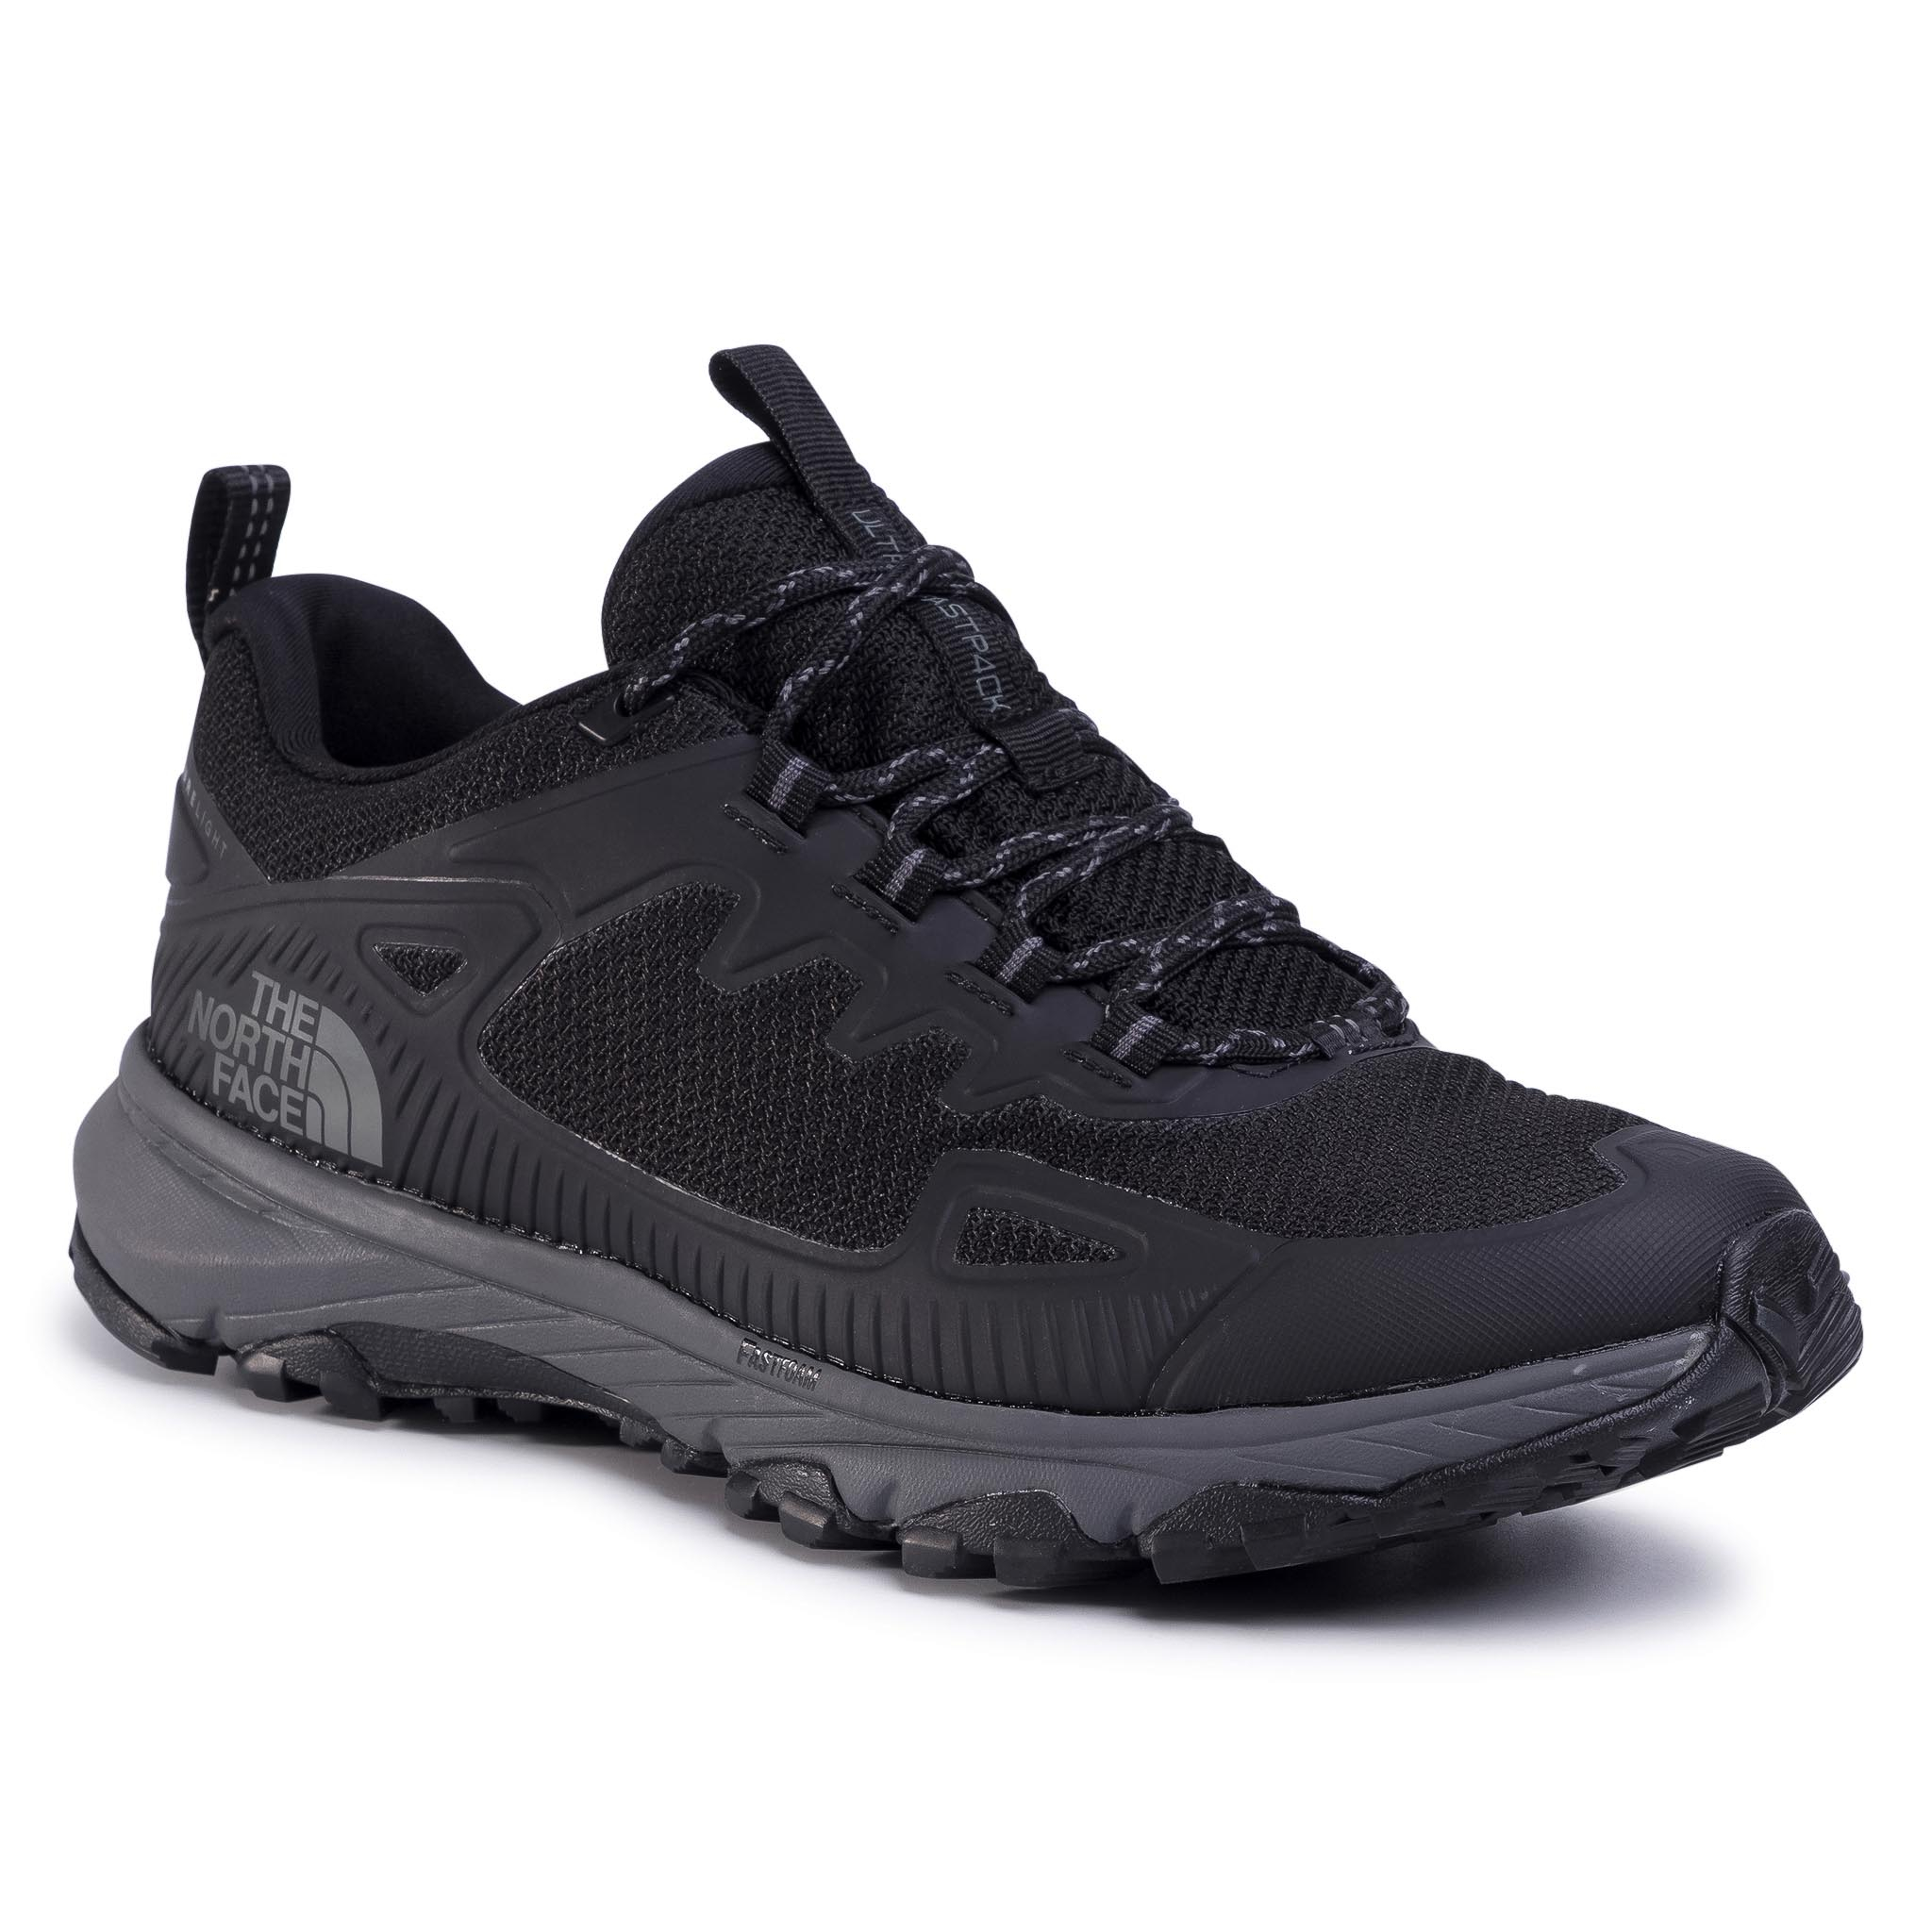 Trekkings The North Face - Ultra Fastpack Iv Futurelight Nf0a46bwkz2 Tnf Black/Zinc Grey imagine epantofi.ro 2021